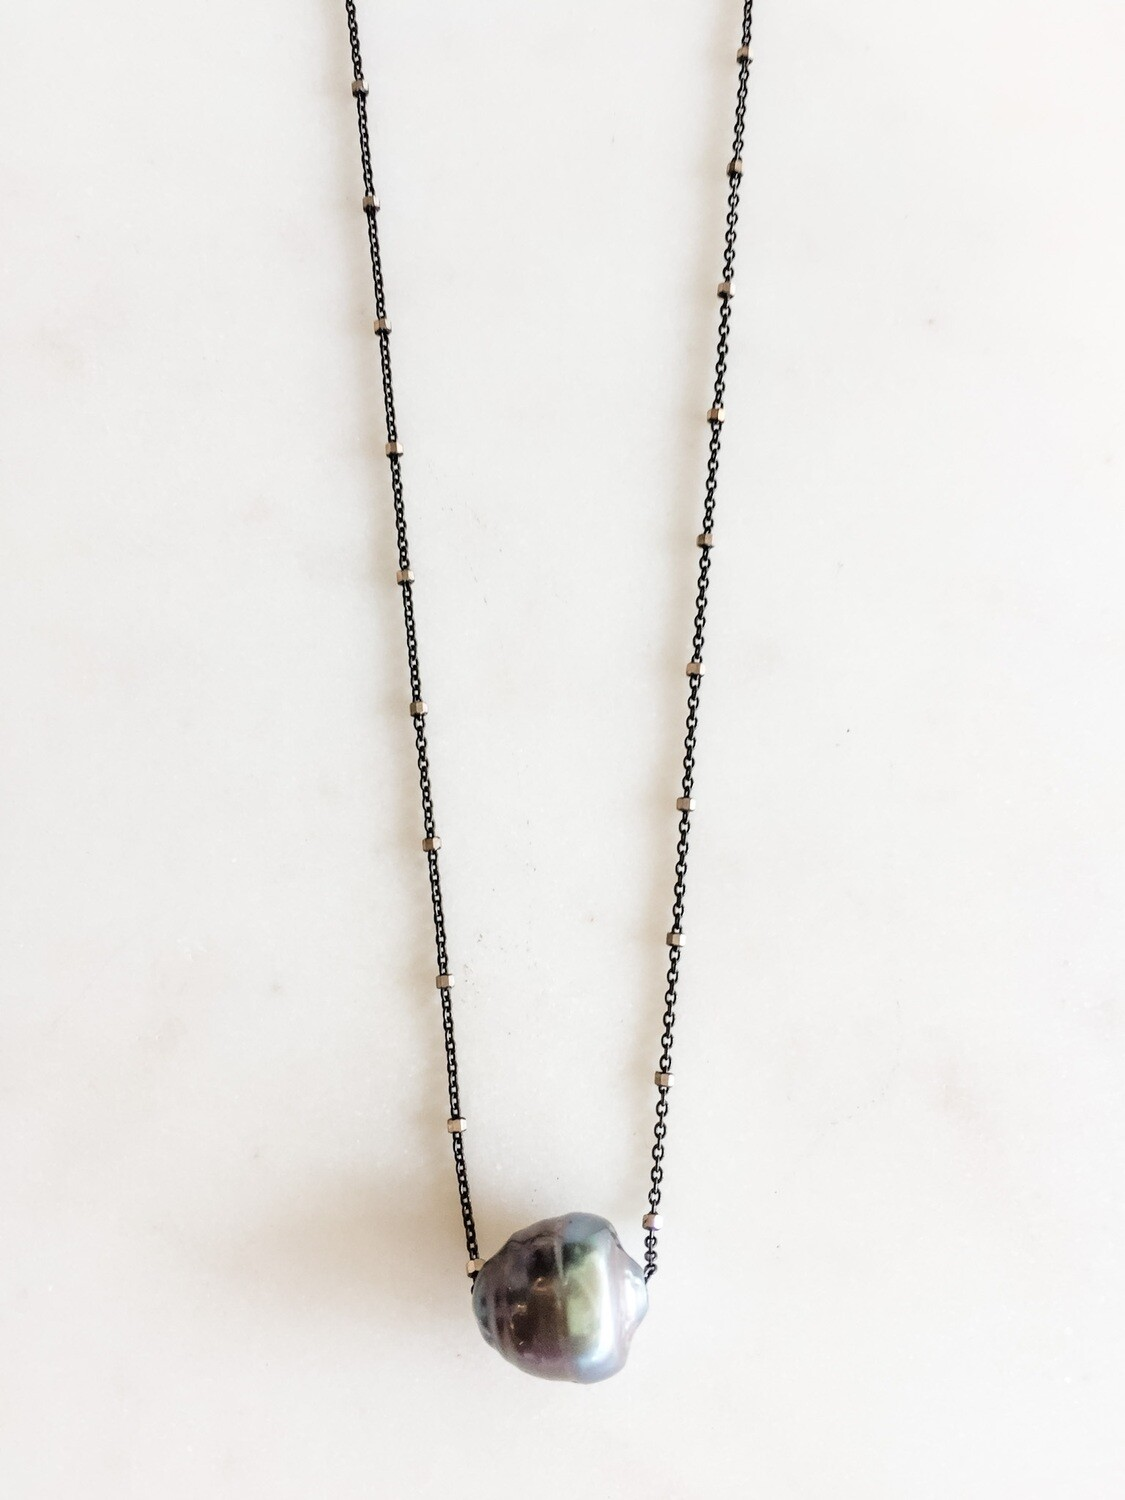 Oxidized Chain Necklace w/Tahitian Pearl - 16""